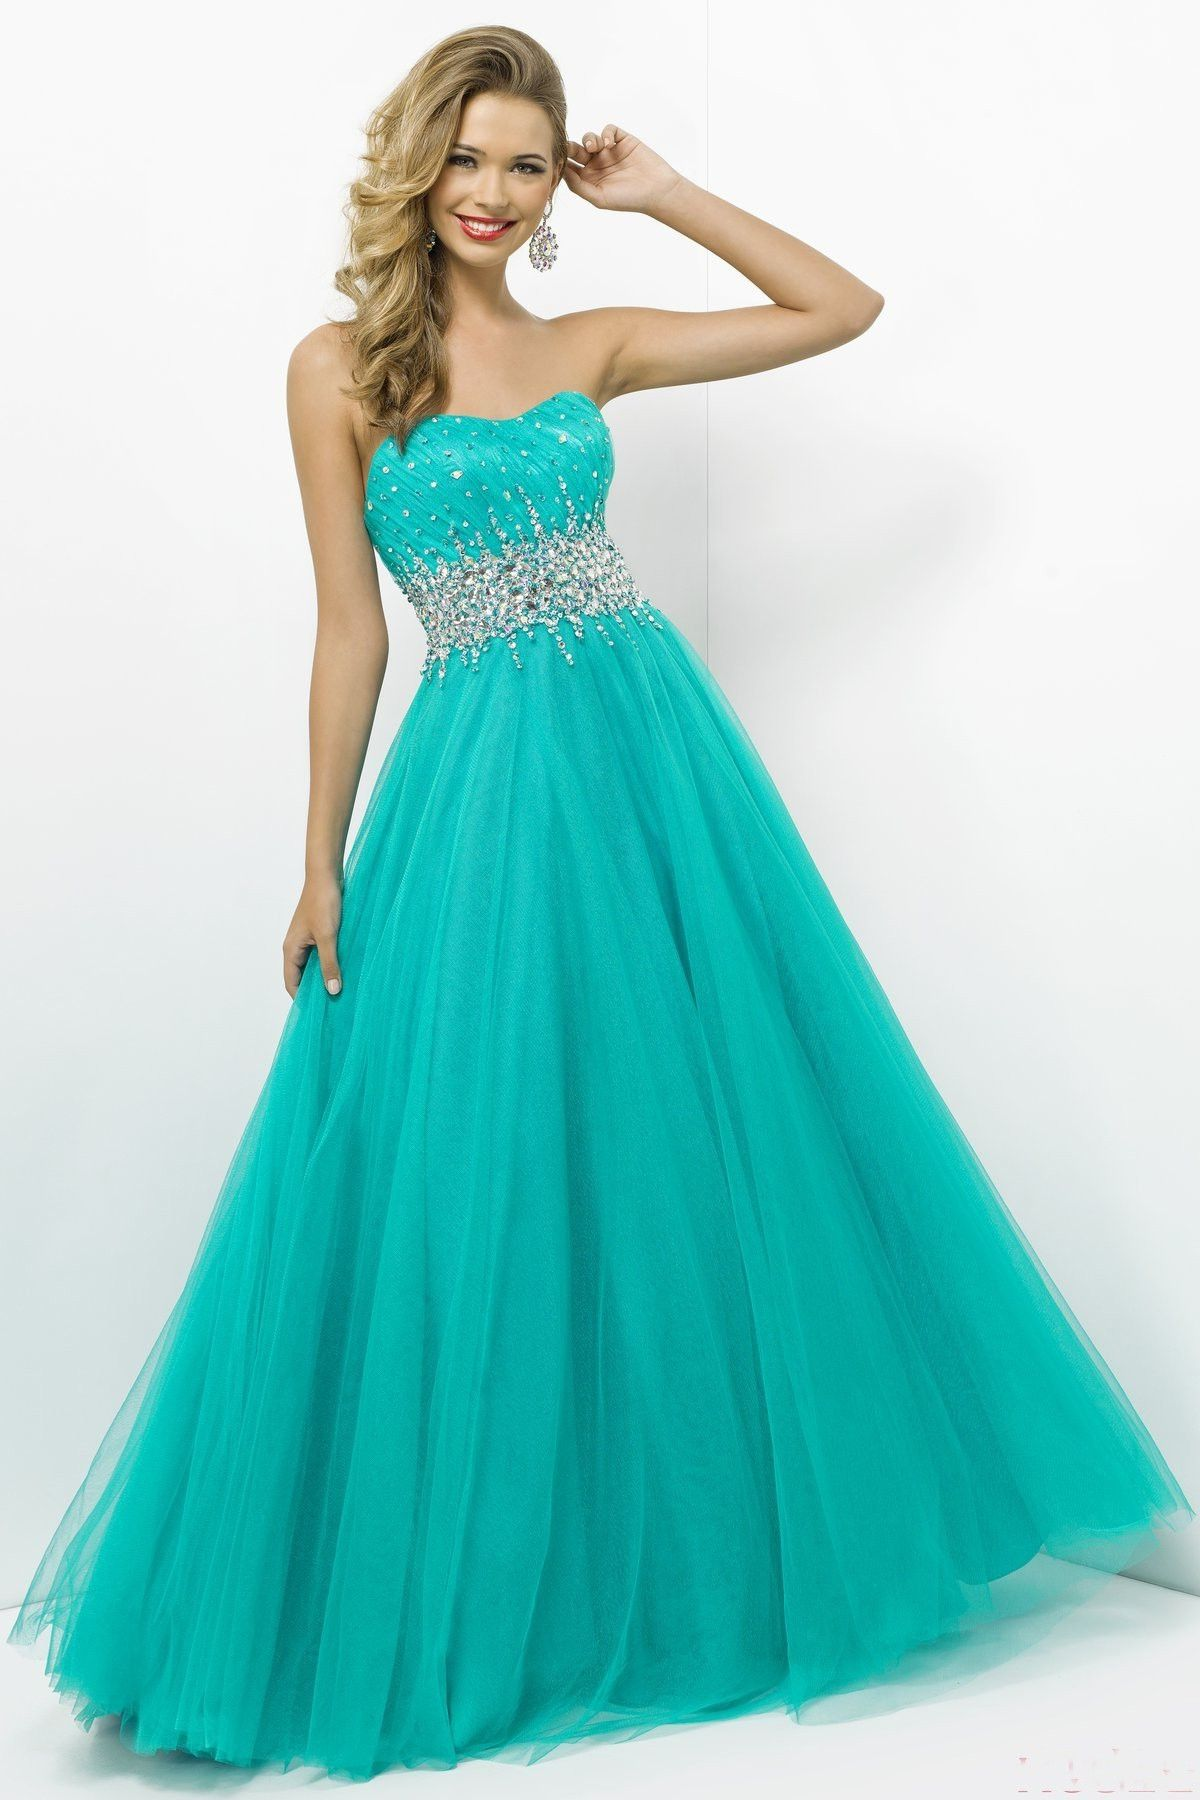 Cute Fashions! - windowshoponline.com | Teen prom dresses, Teen prom ...